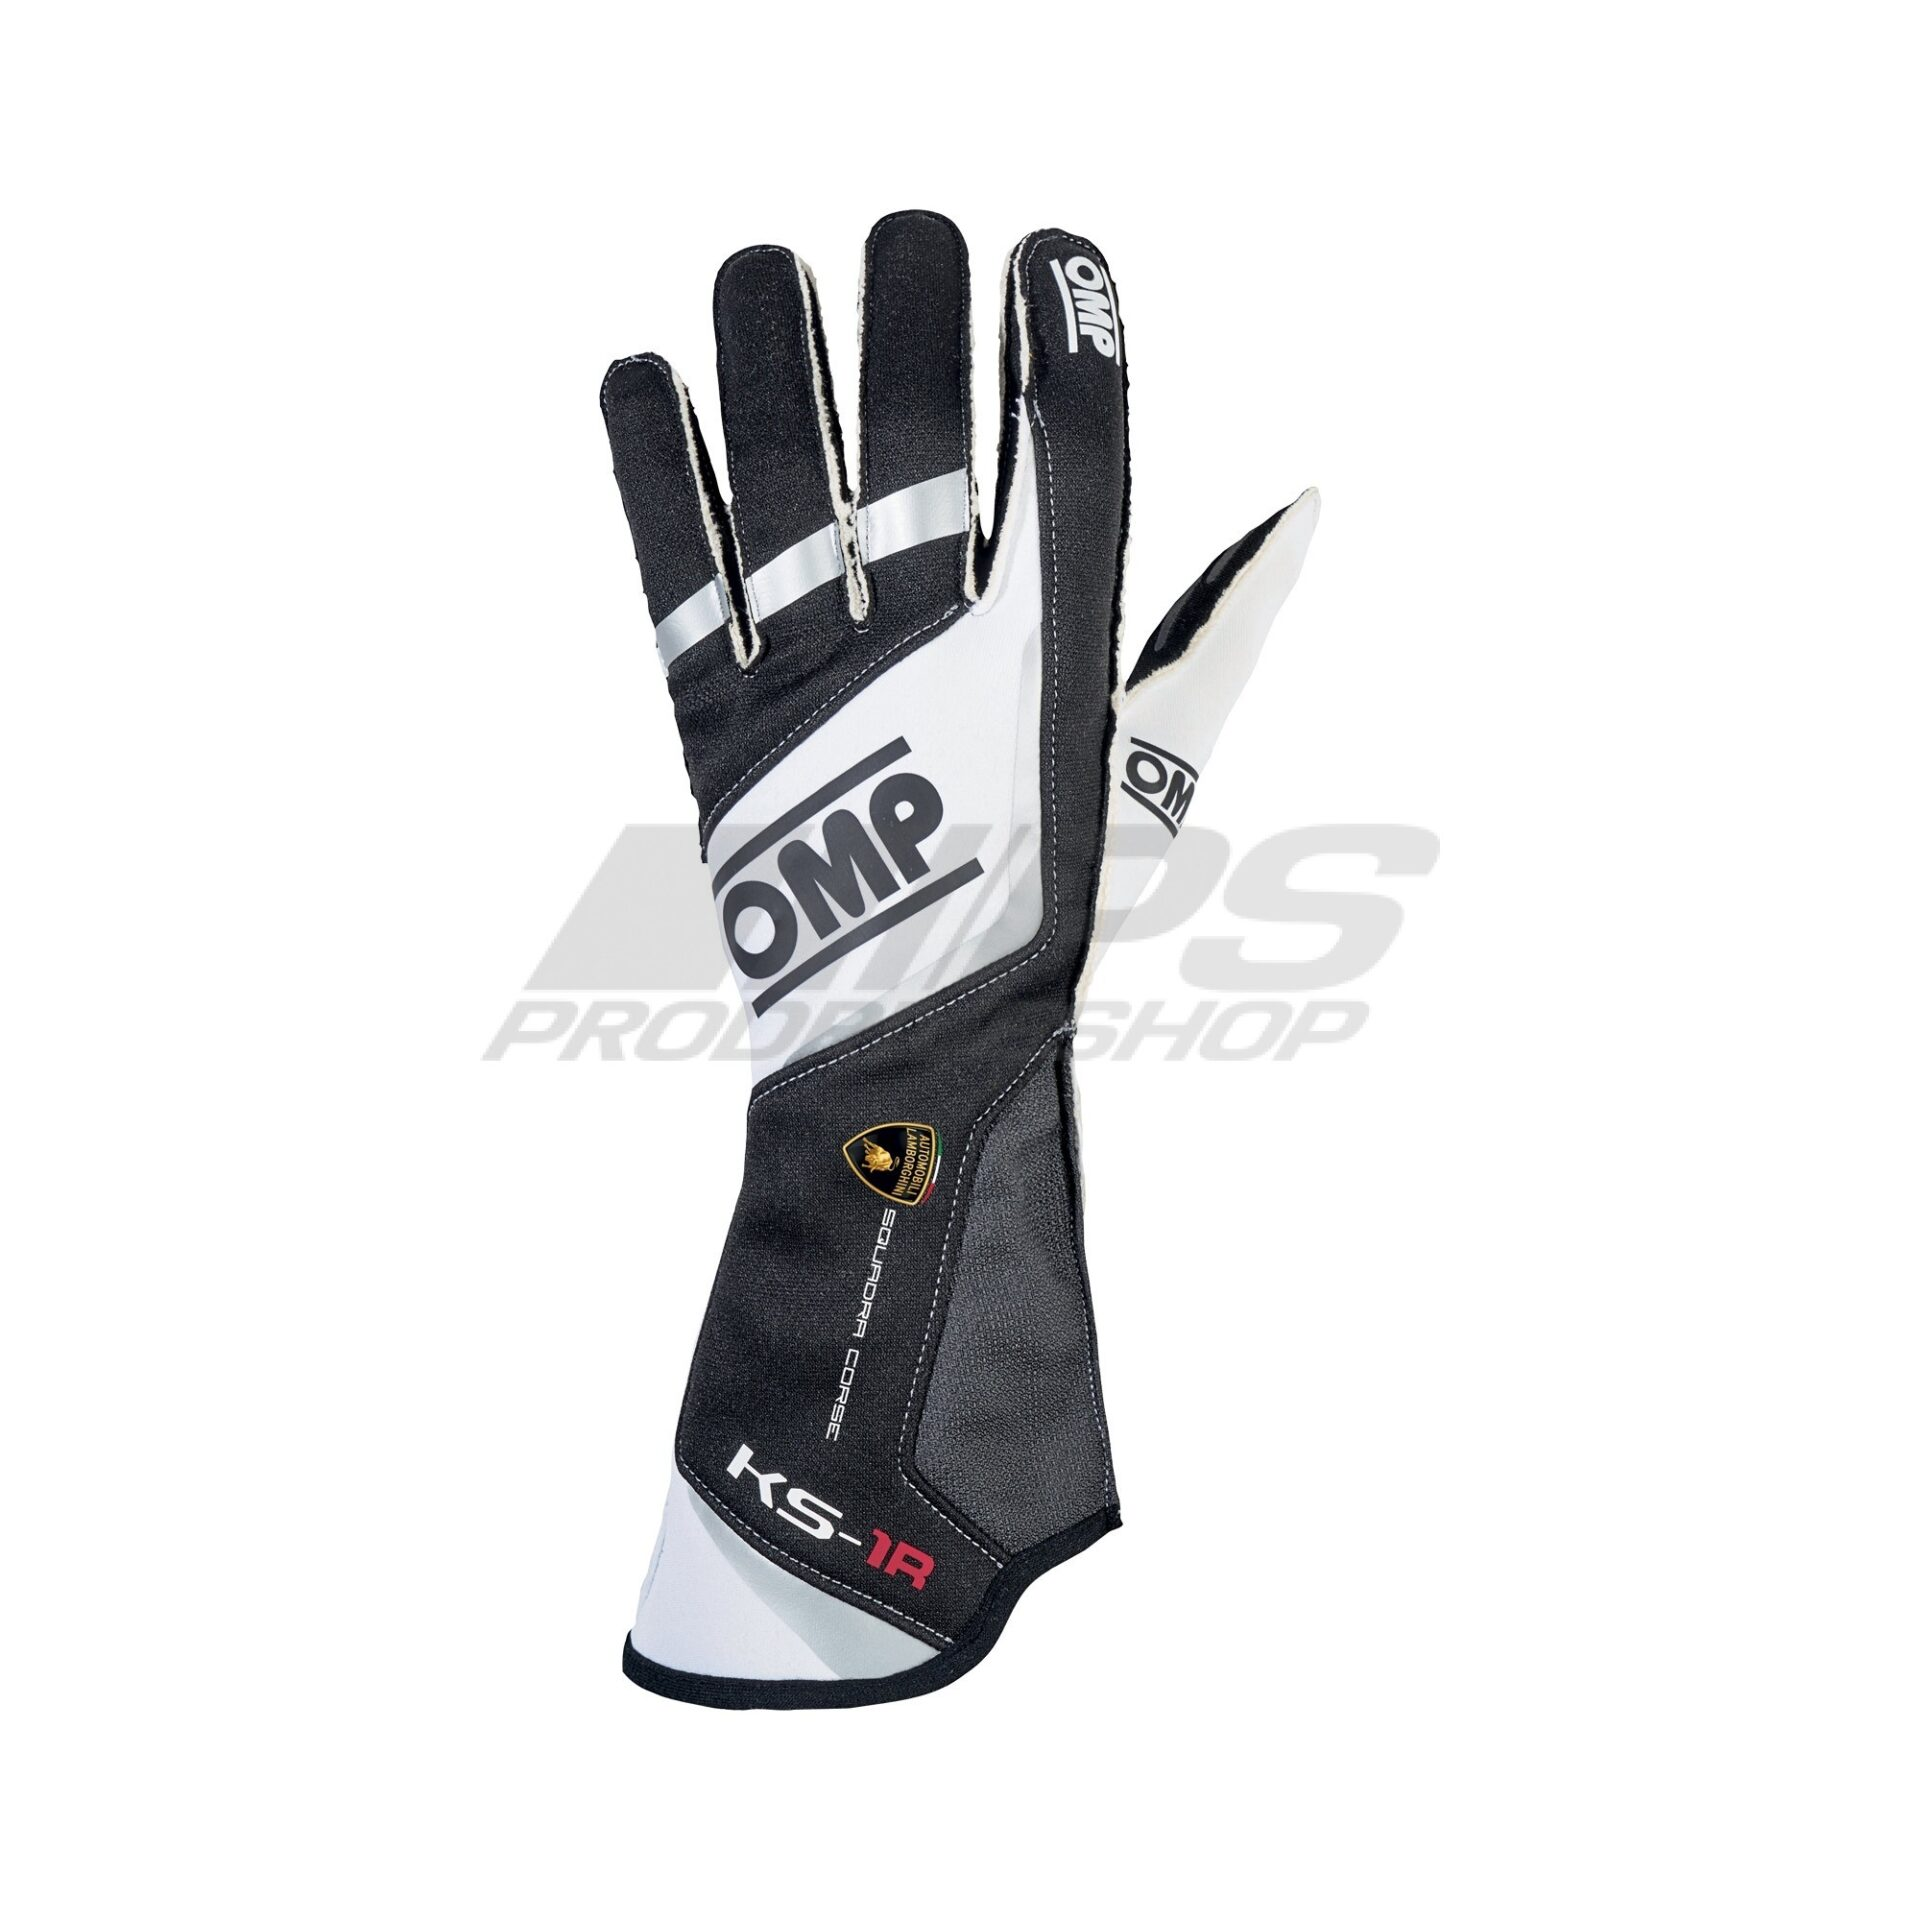 KS-1R GLOVES LAMBORGHINI